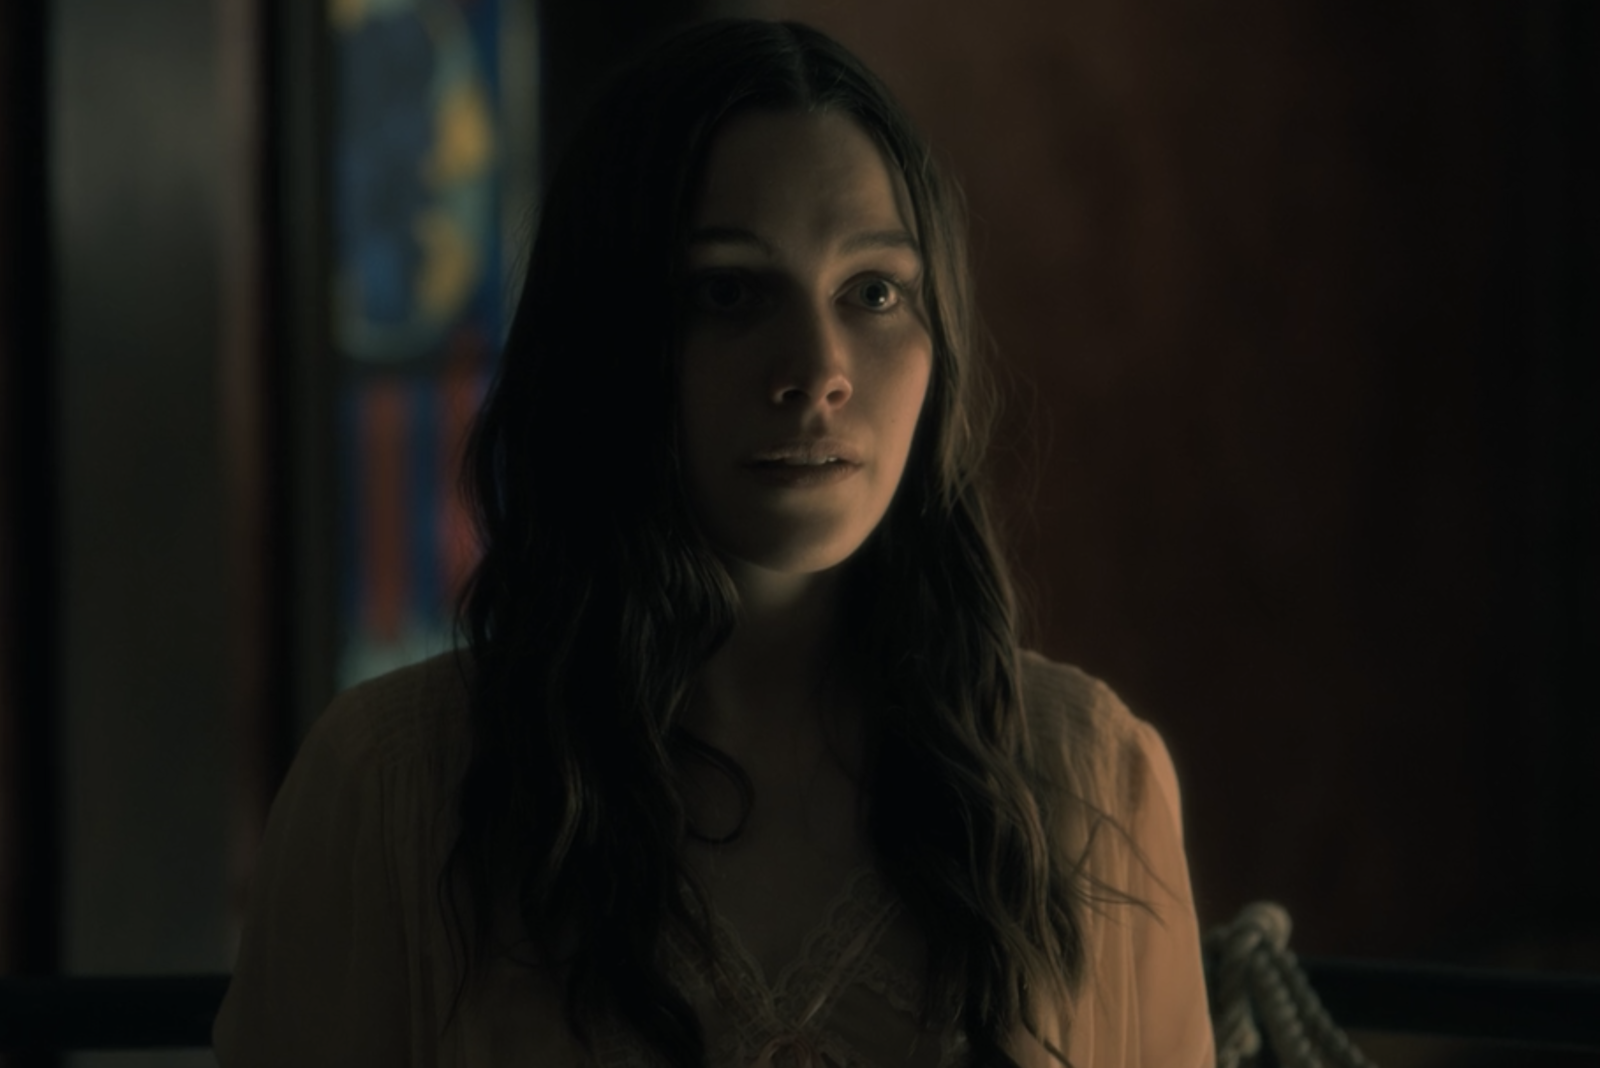 In  The Haunting of Hill House , Nell returned to Hill House and ended up dying in one of the most emotional moments from 2018. -  Nell Crain's death came early in the series, but set the stage for some incredible storytelling.